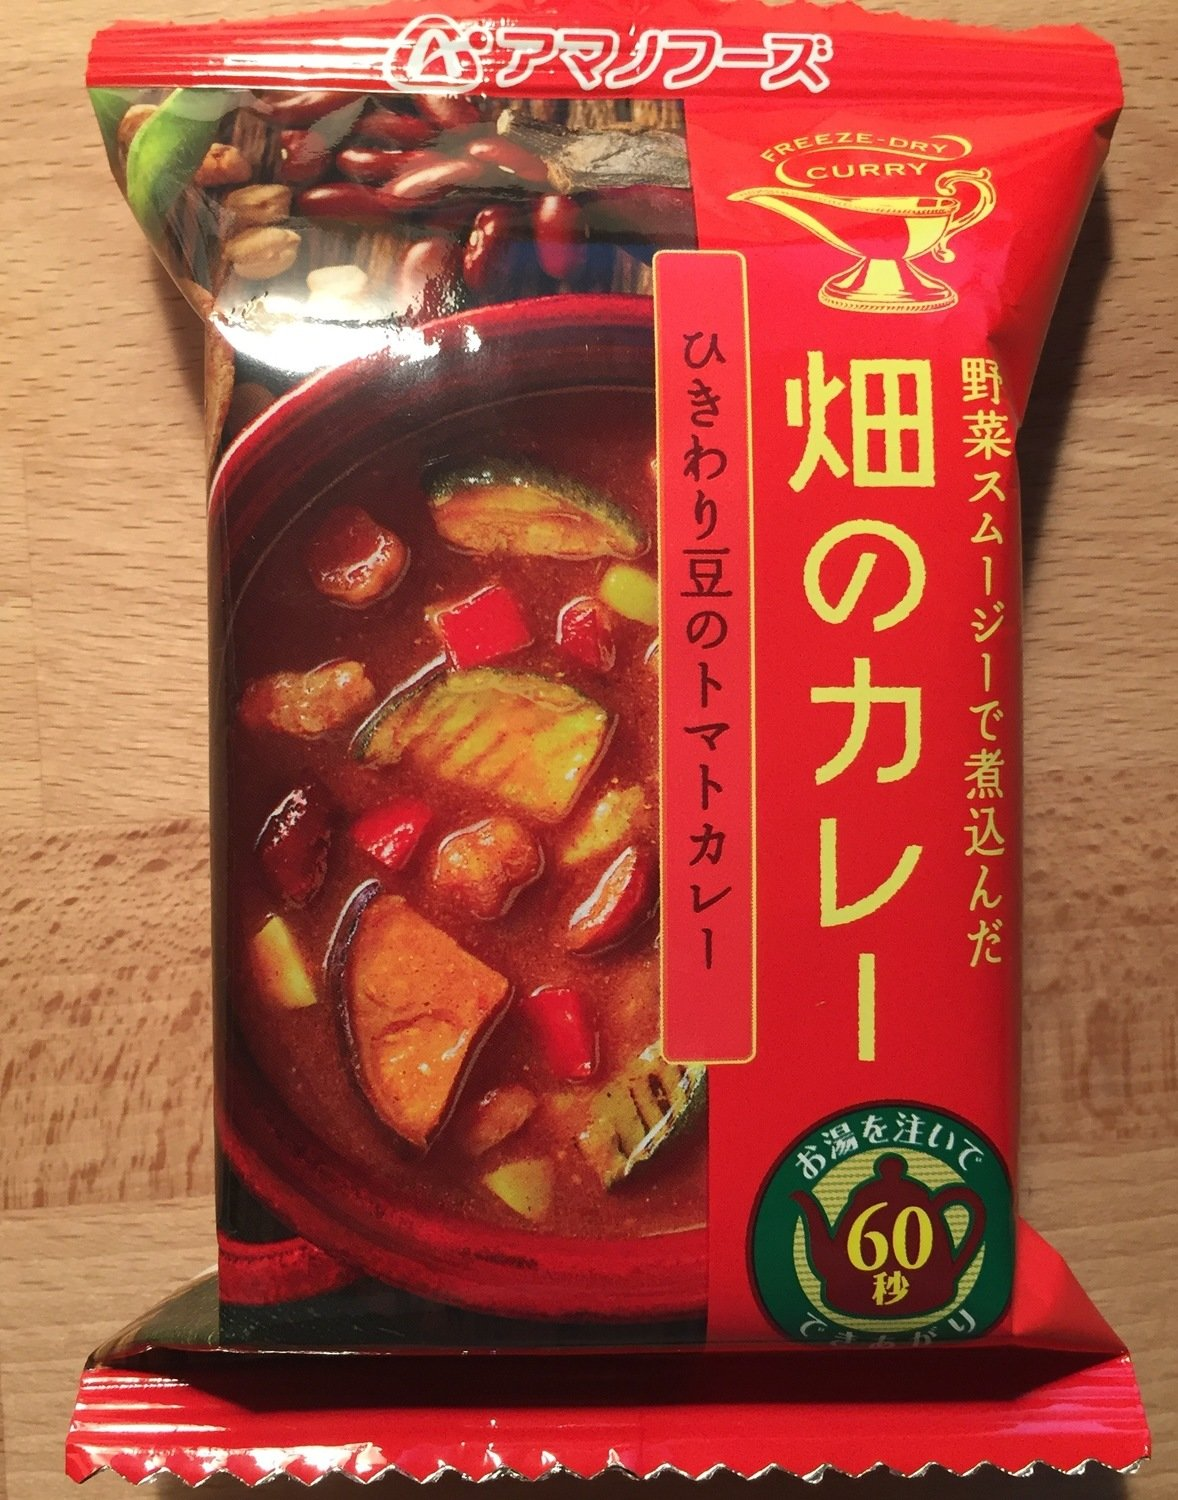 """Amano Foods """"Hatake no Curry"""", Freeze Dried, Beans and Tomato, Pork curry, 37g"""